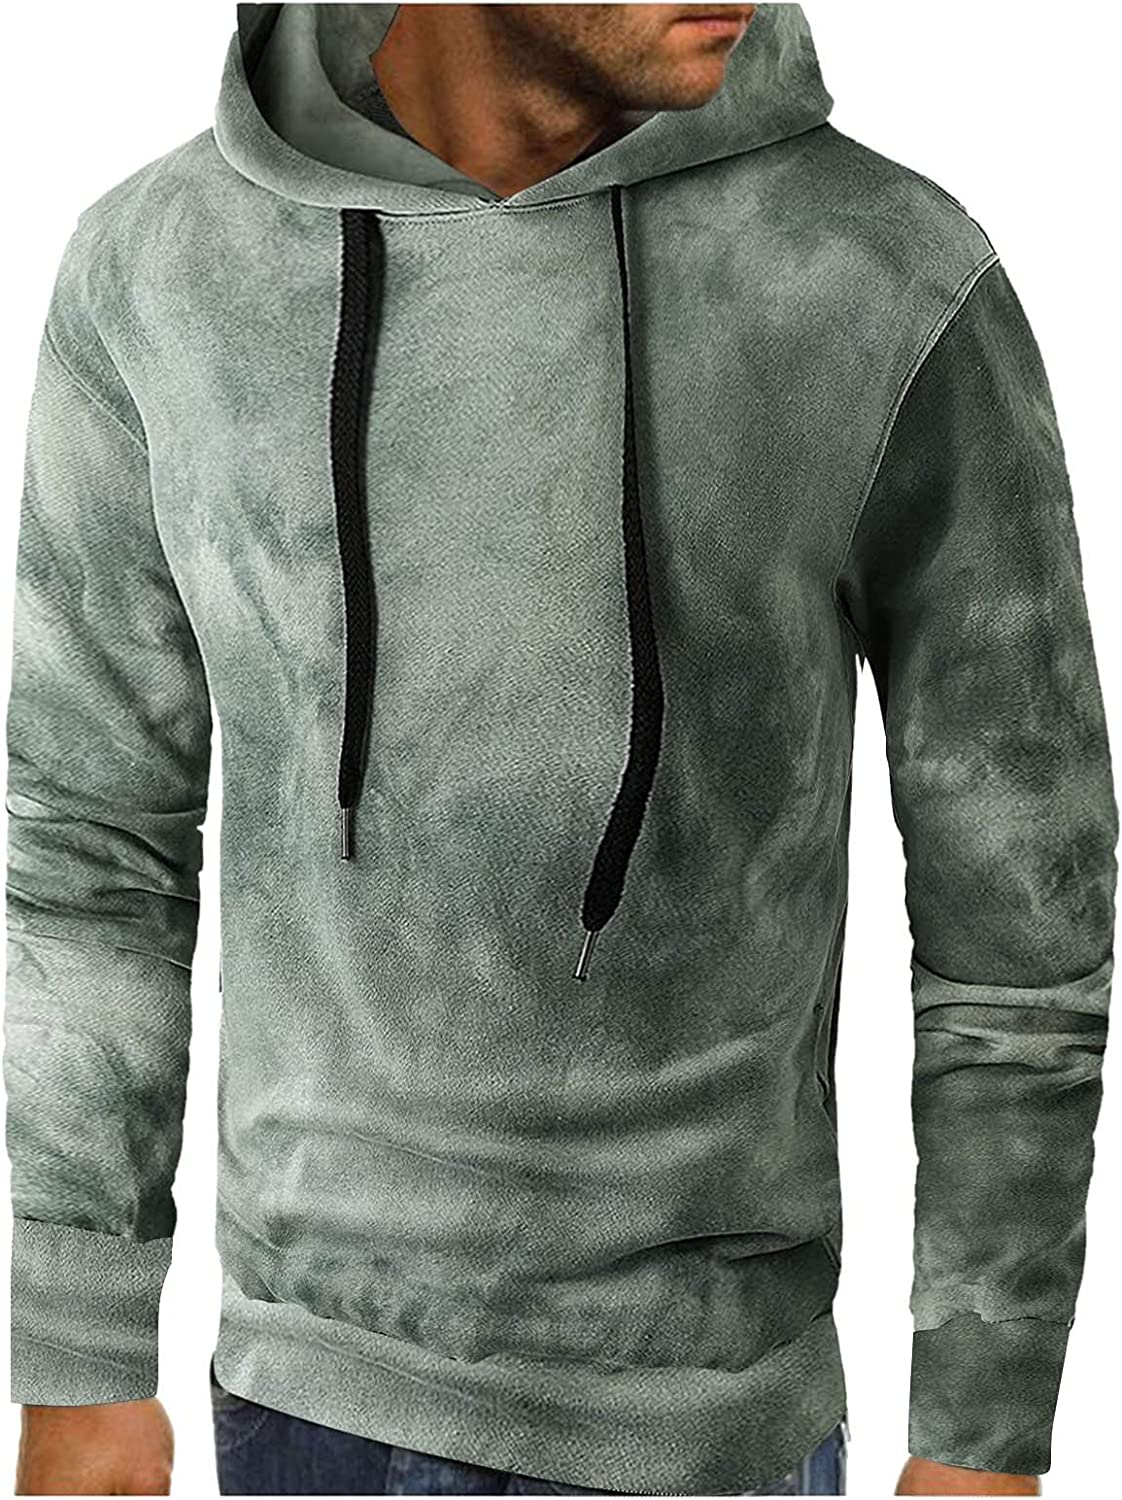 XXBR Tie-dye Hoodies for Mens, Fall Street Style Drawstring Hooded Sweatshirts Slim Fit Sports Workout Casual Pullover